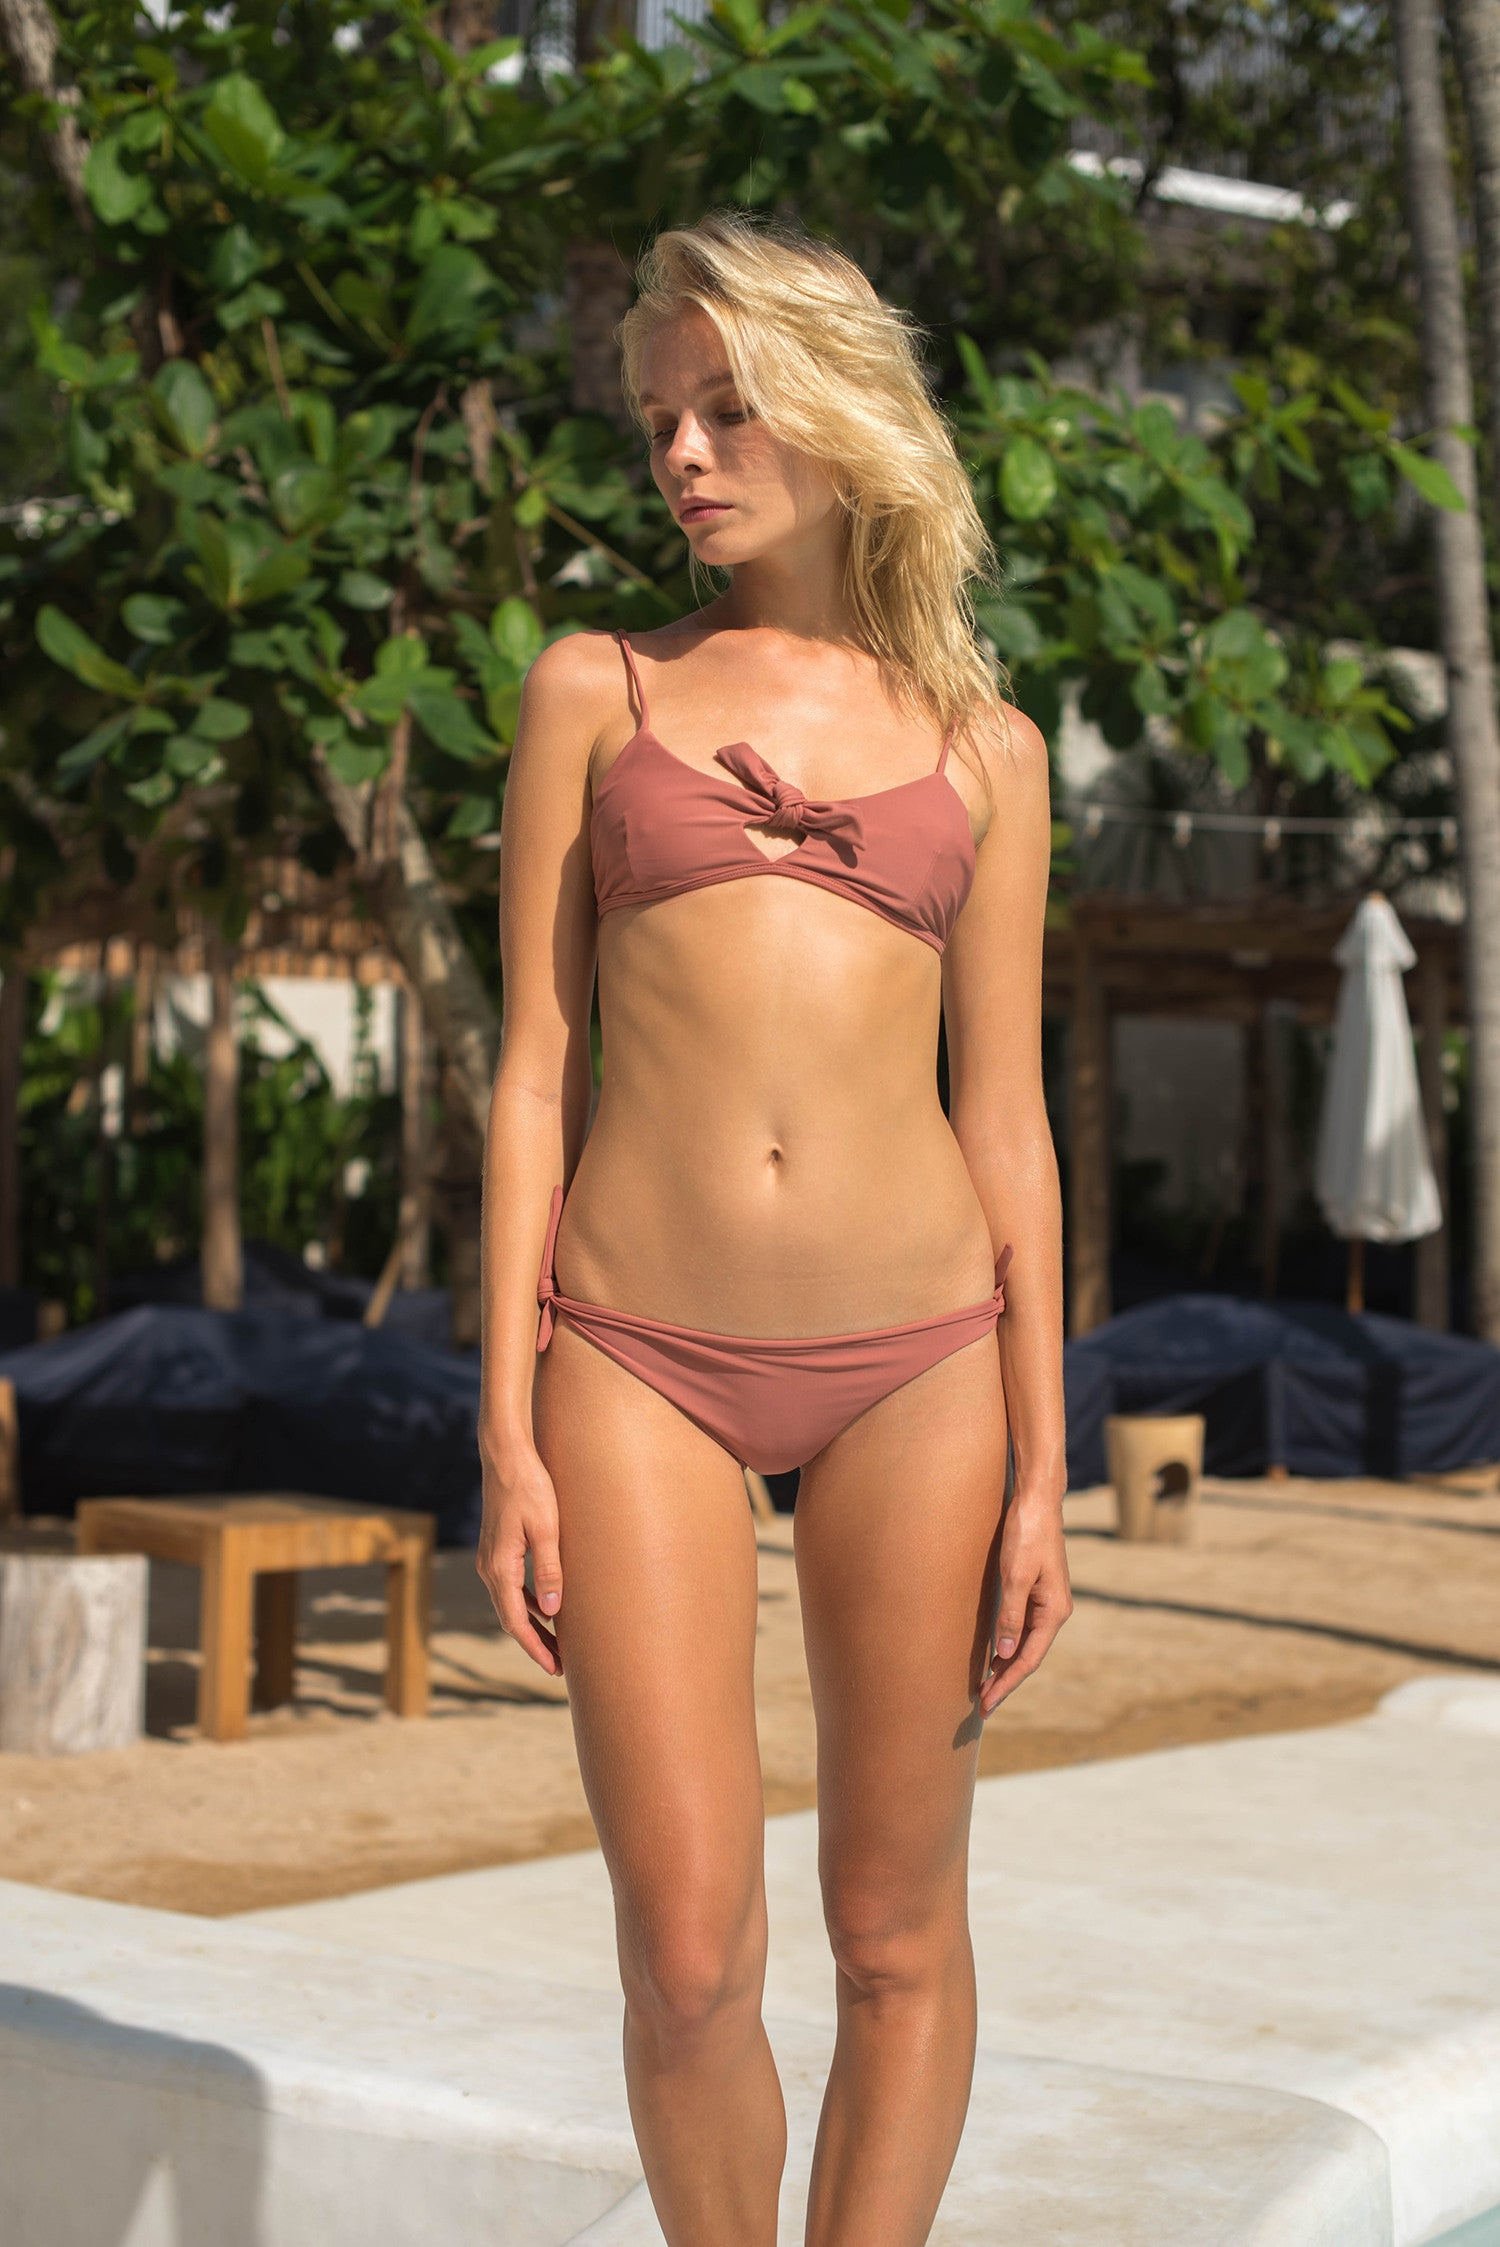 Storm Swimwear - Barbados - Bow tie front bikini top in Canyon Rose